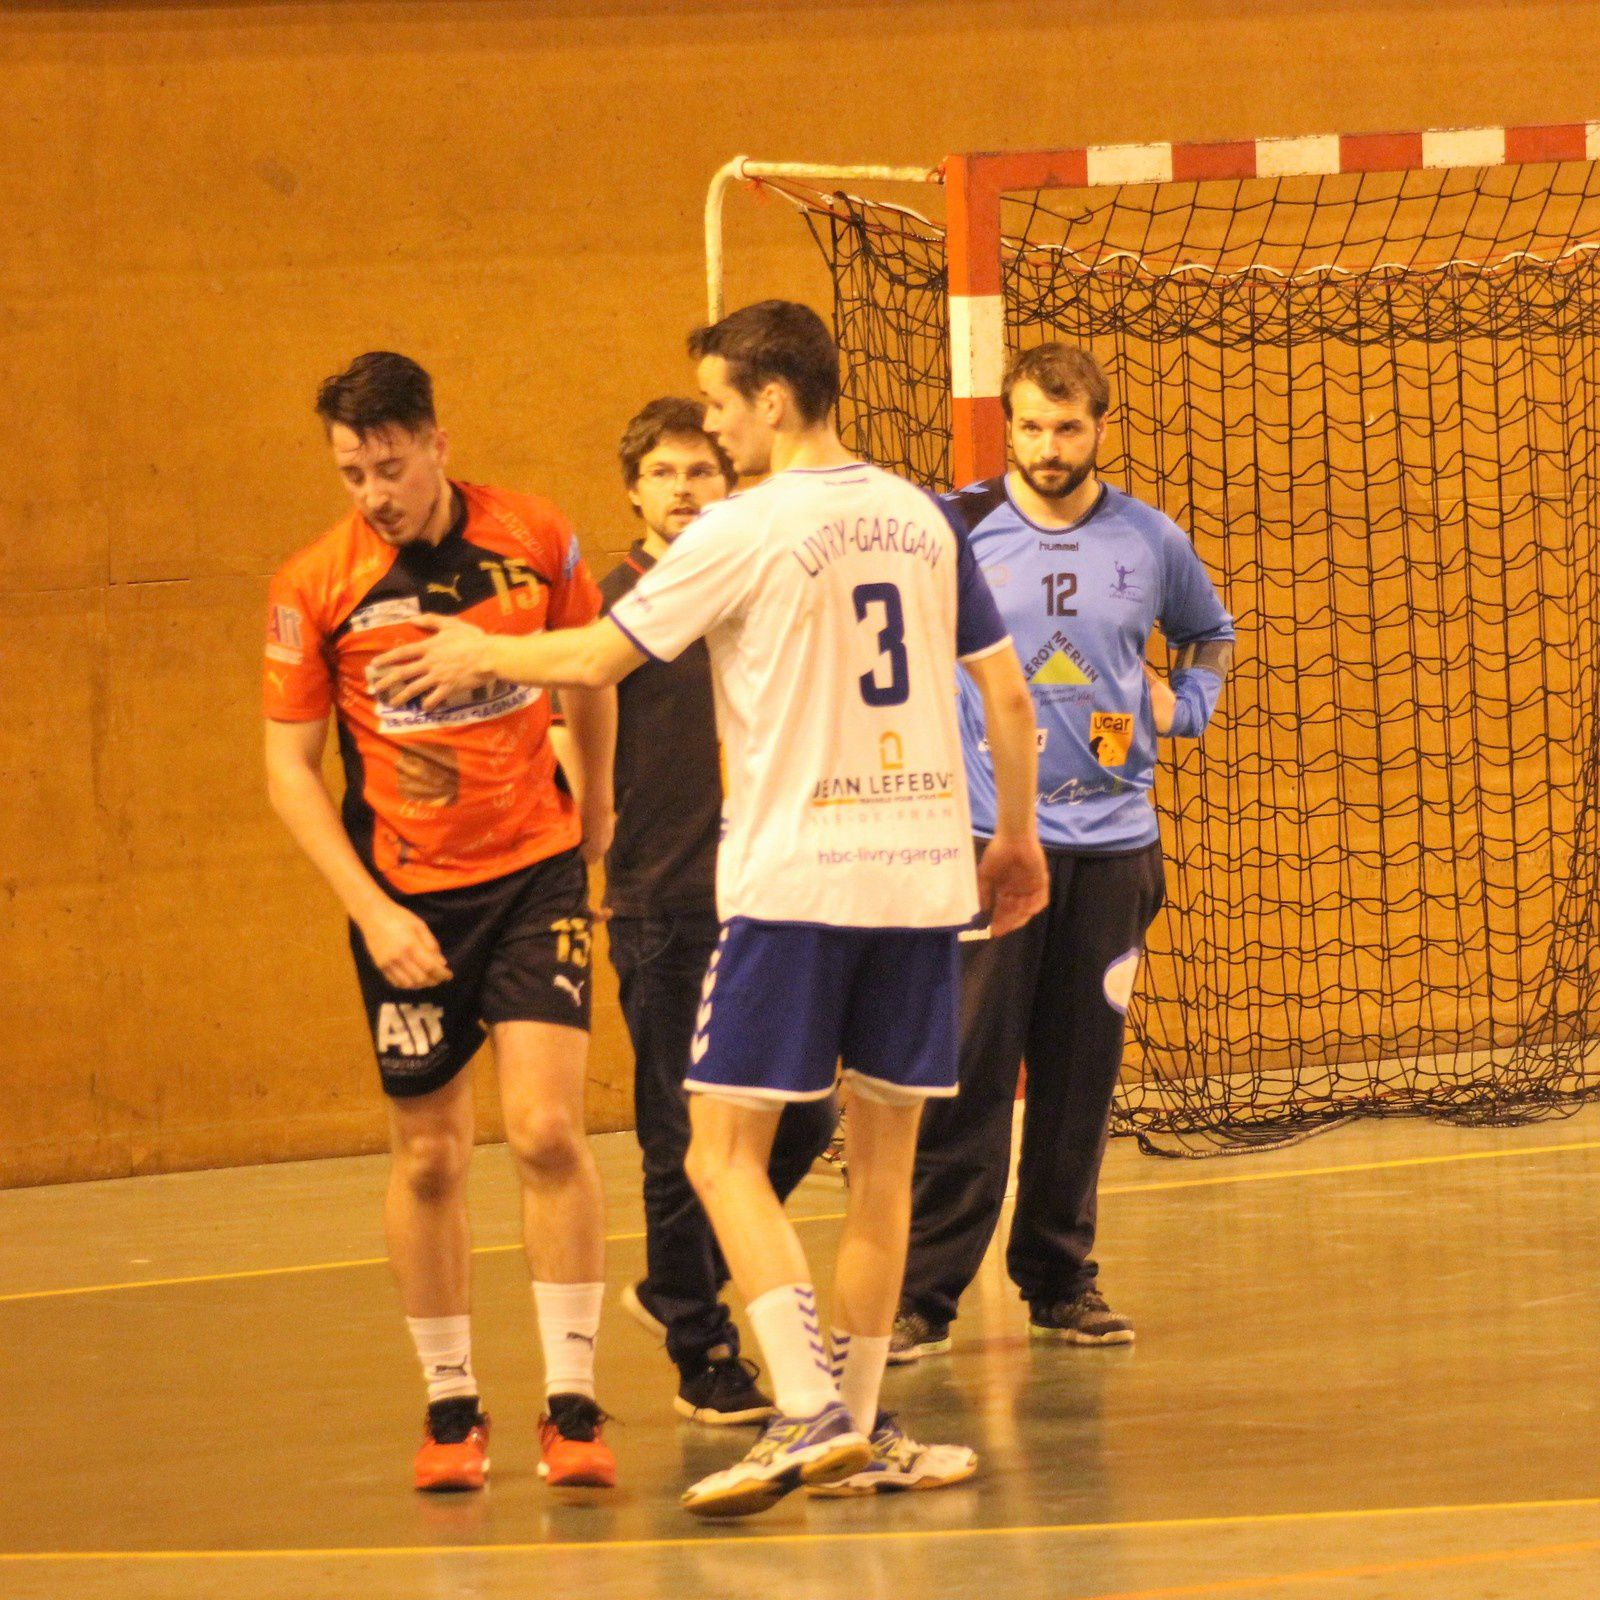 Livry-Gargan vs THBMLV 1 (1/2 Finale Coupe de la Ligue Nationaux) 05.05.17